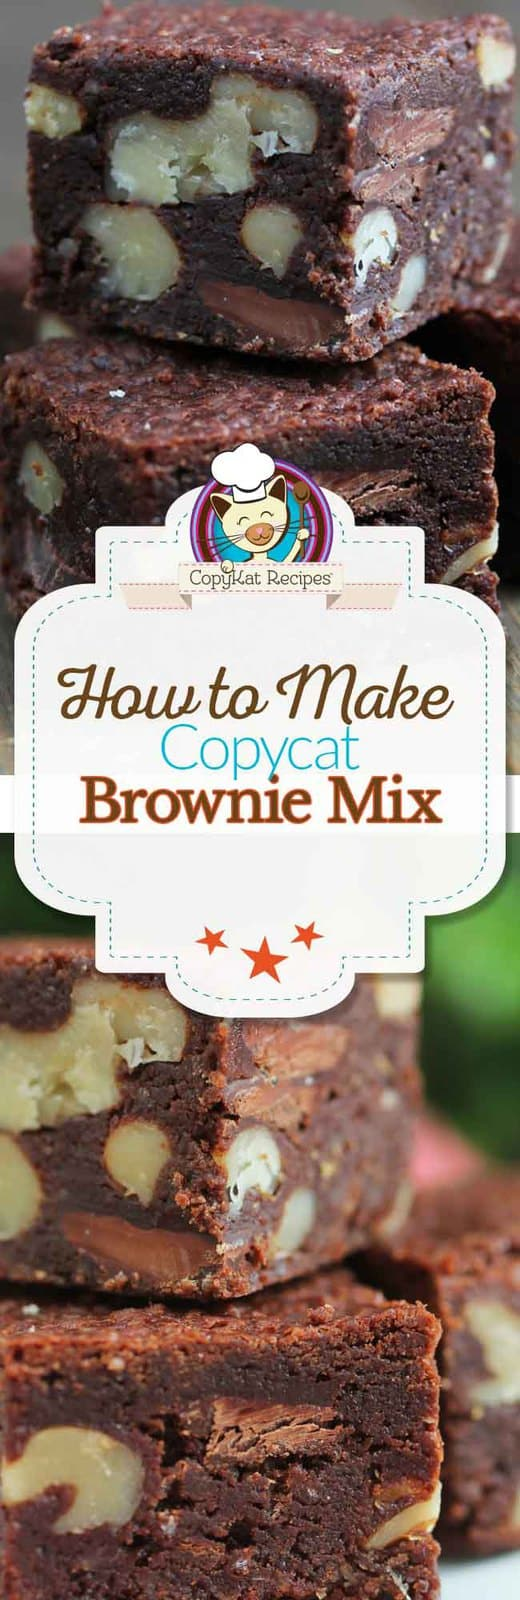 Make homemade brownie mix for the best brownies ever.